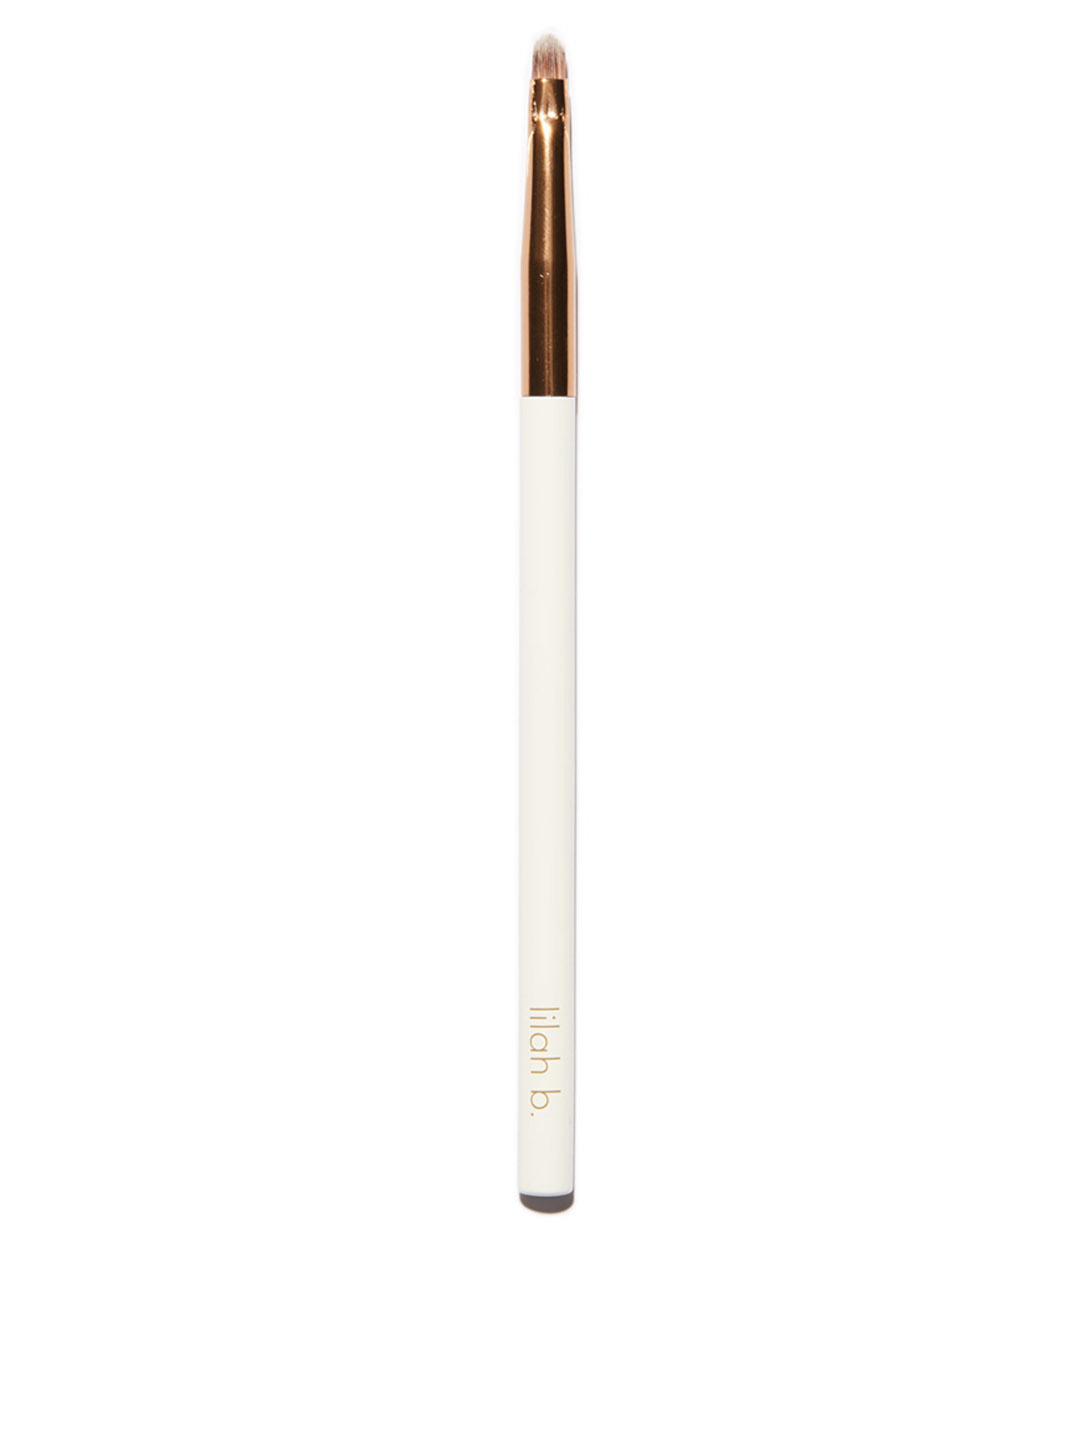 LILAH B. Eye/Lip Liner Brush Beauty